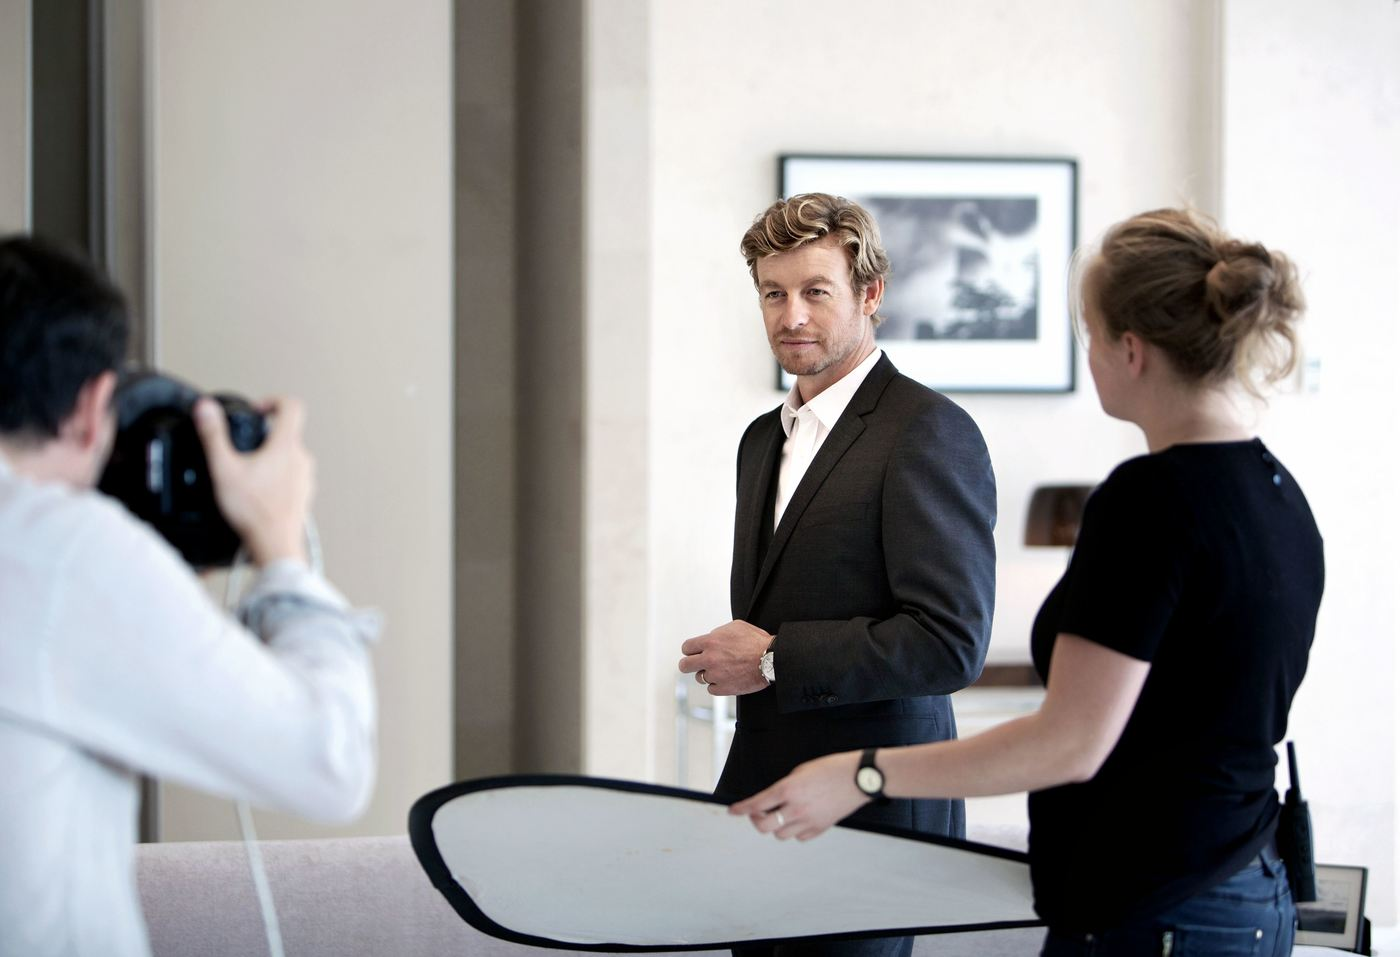 Longines Corporate Event: Simon Baker is the epitome of elegance in the new Longines advertising campaign 2